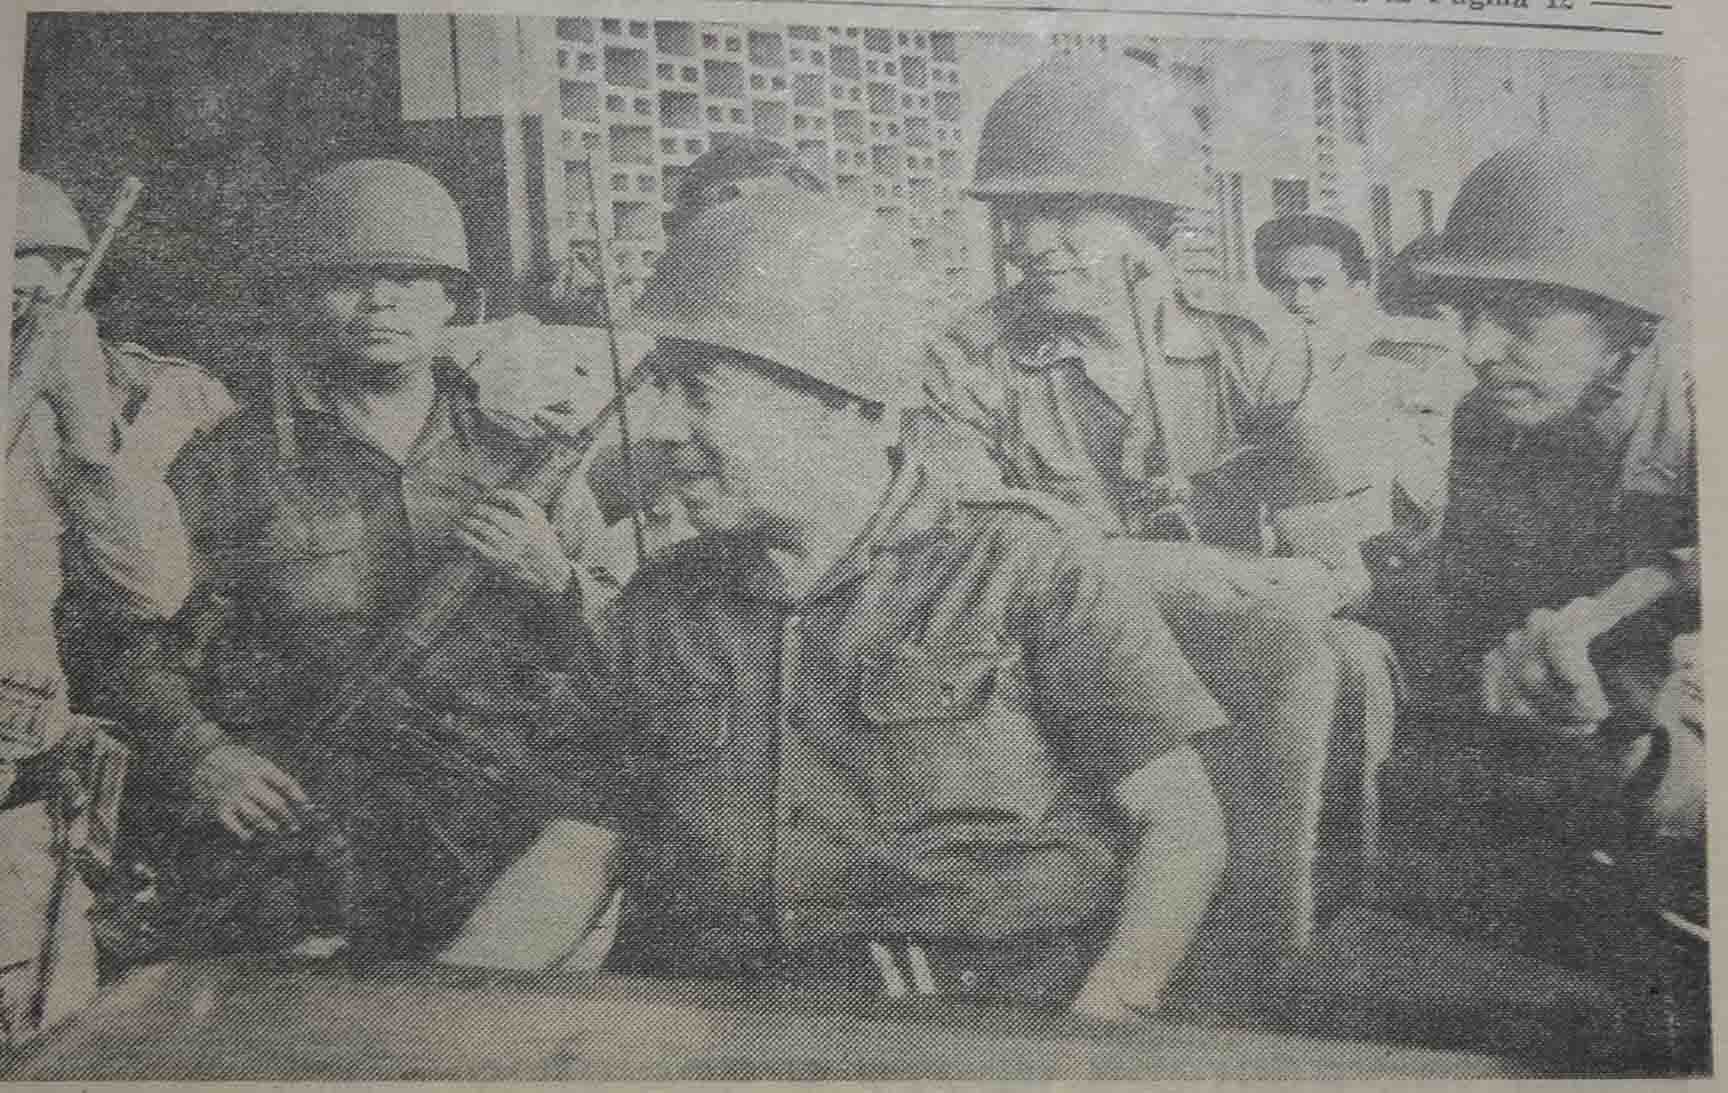 The Salvadoran President inspecting the troops in Nueva Octopeque, captured by the Salvadoran army, july 1969 (catalogue reference: FCO 7/1211)